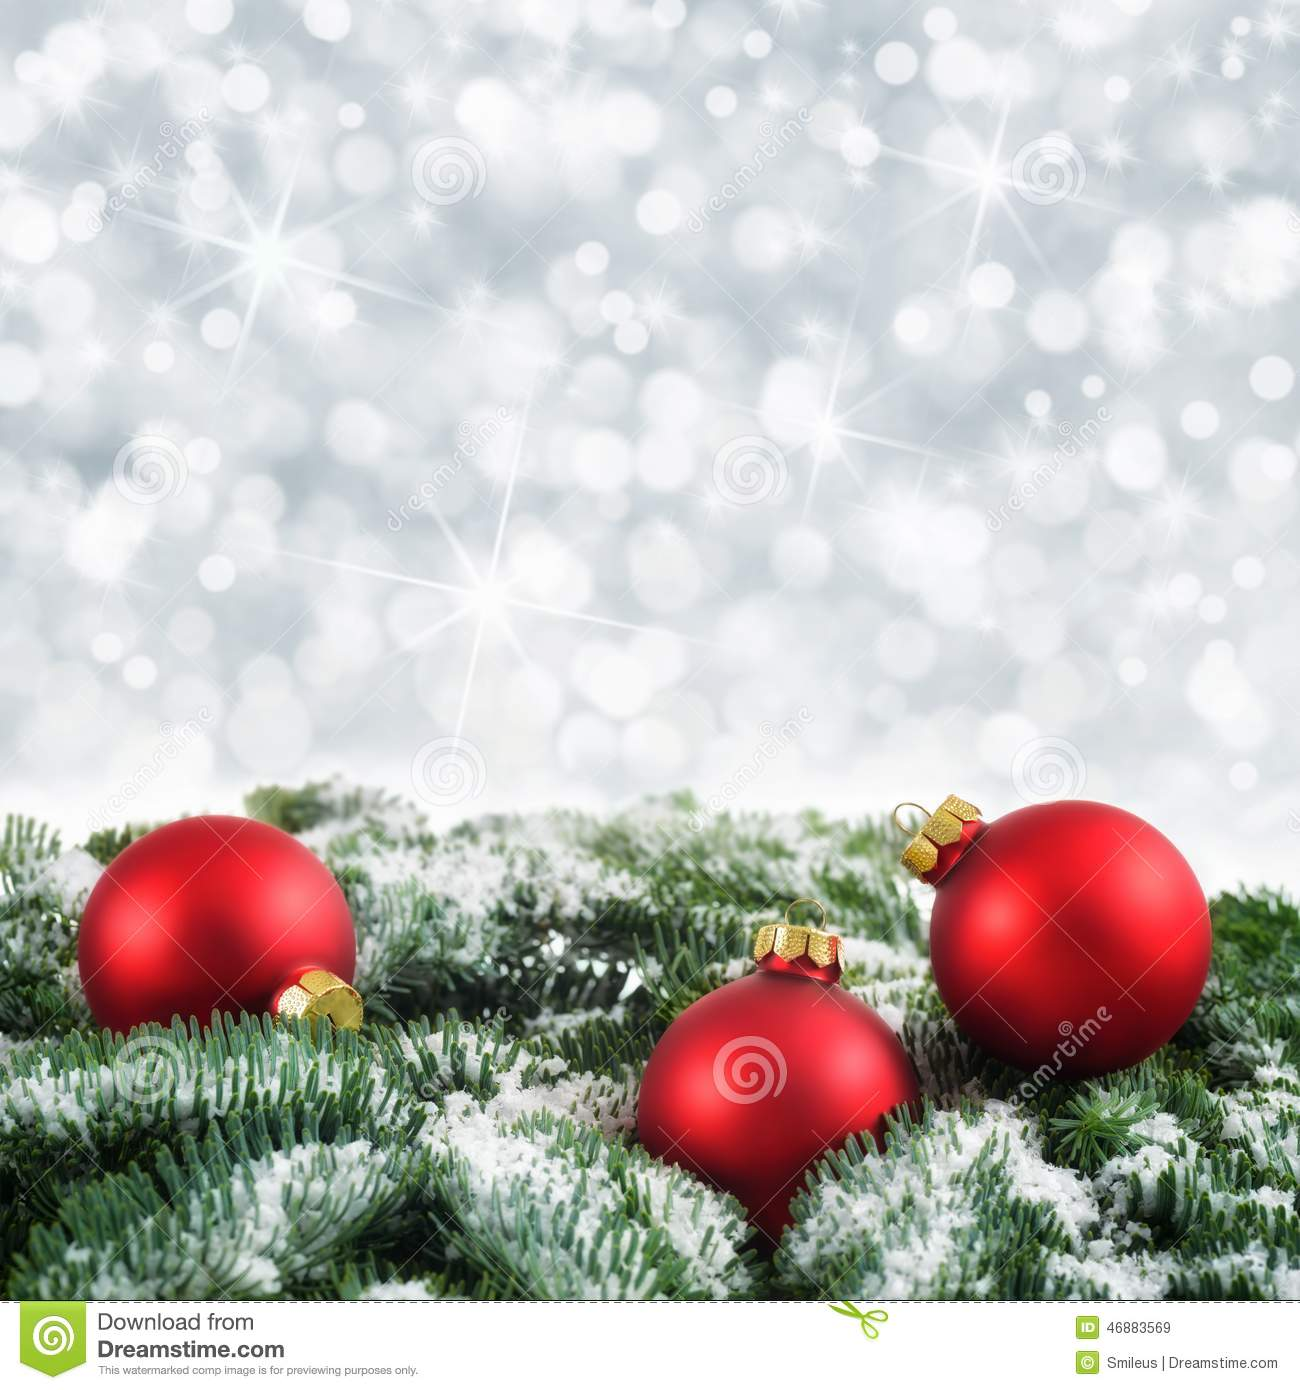 Red, Green And Silver Christmas Background Stock Photo - Image ...